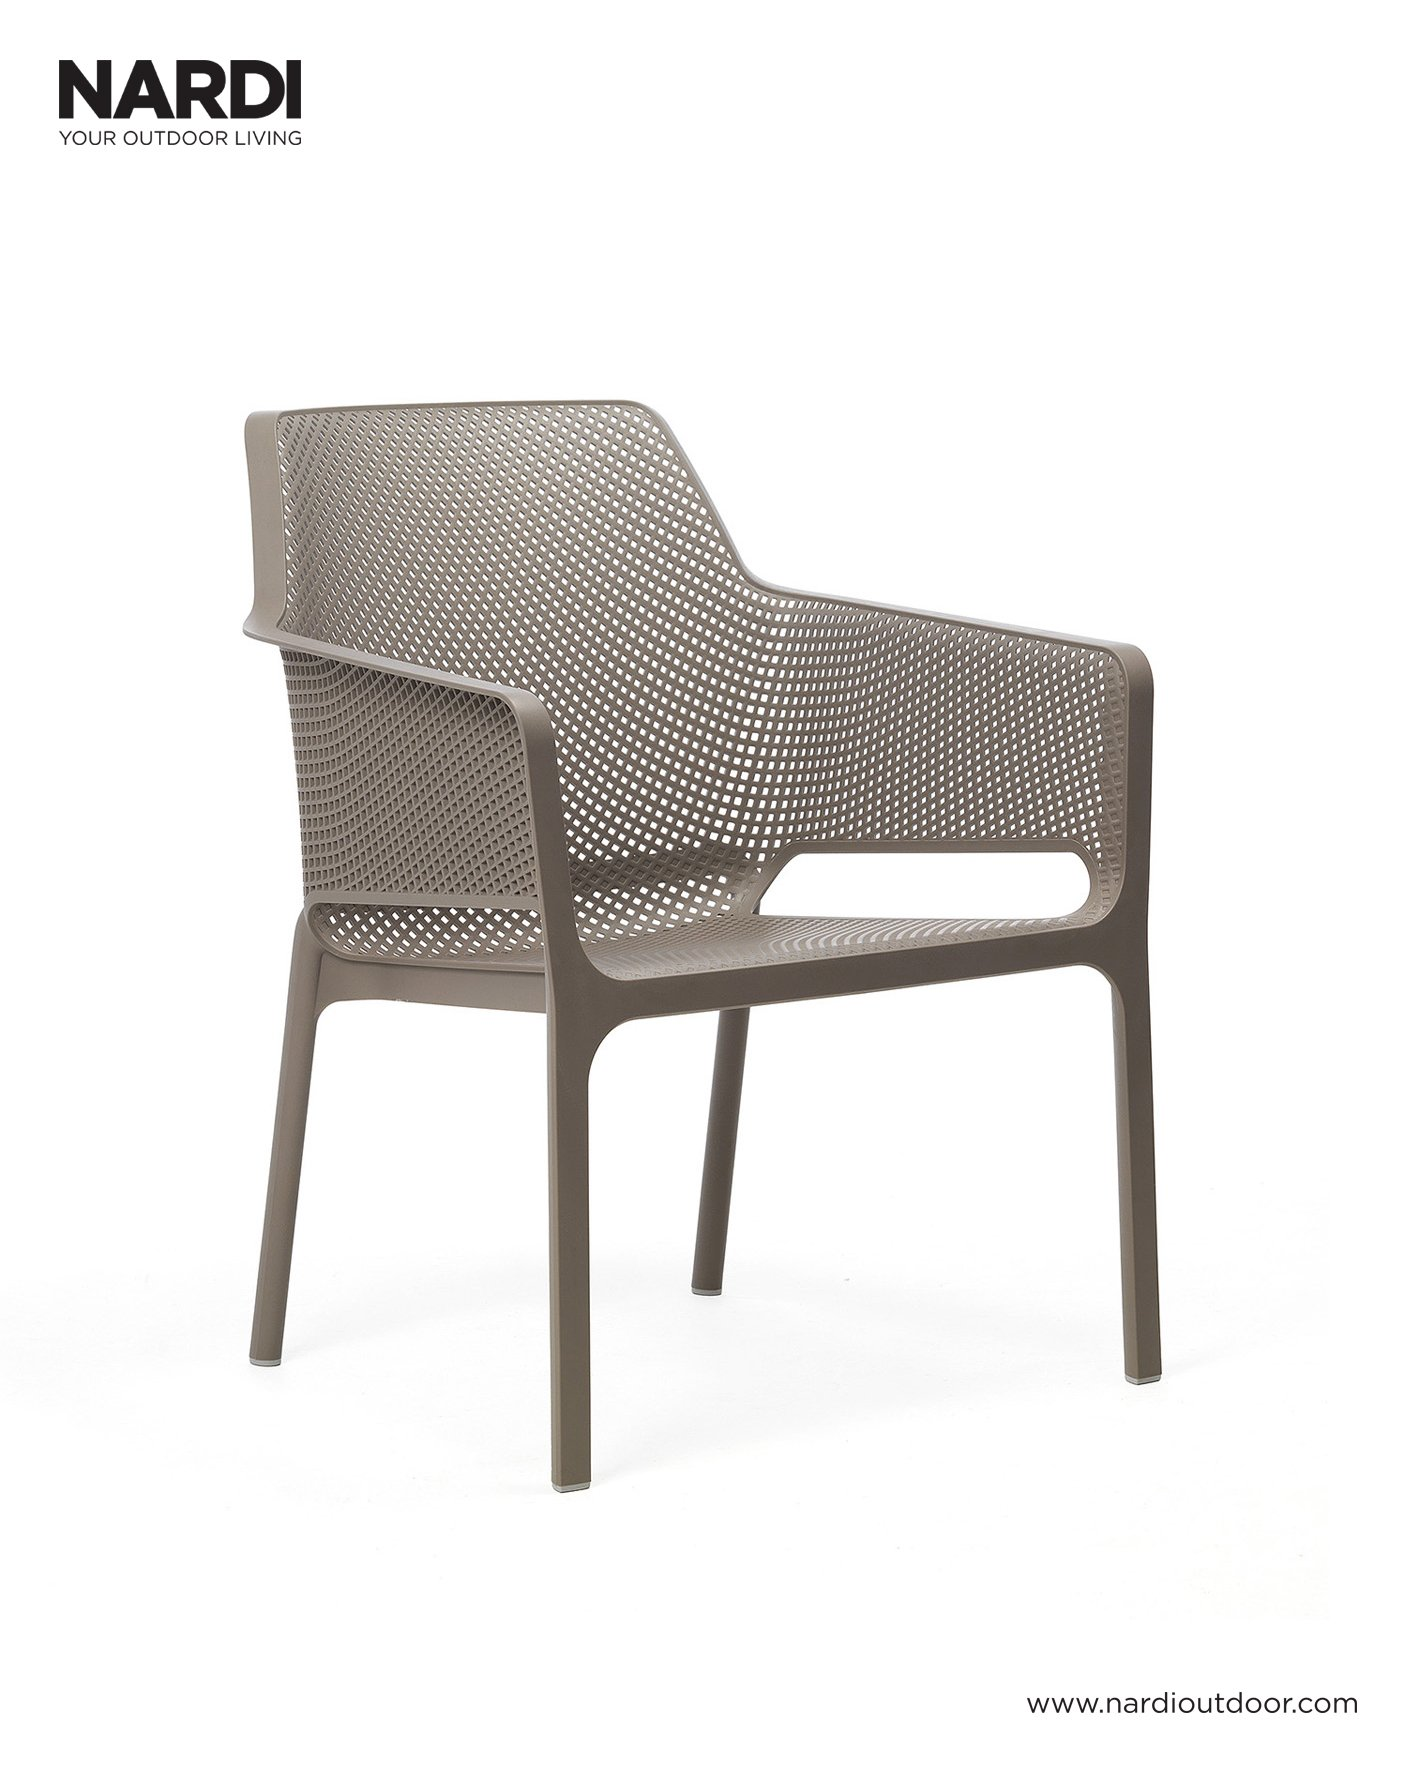 Sensational Nardi Net Relaxer Chair Creativecarmelina Interior Chair Design Creativecarmelinacom